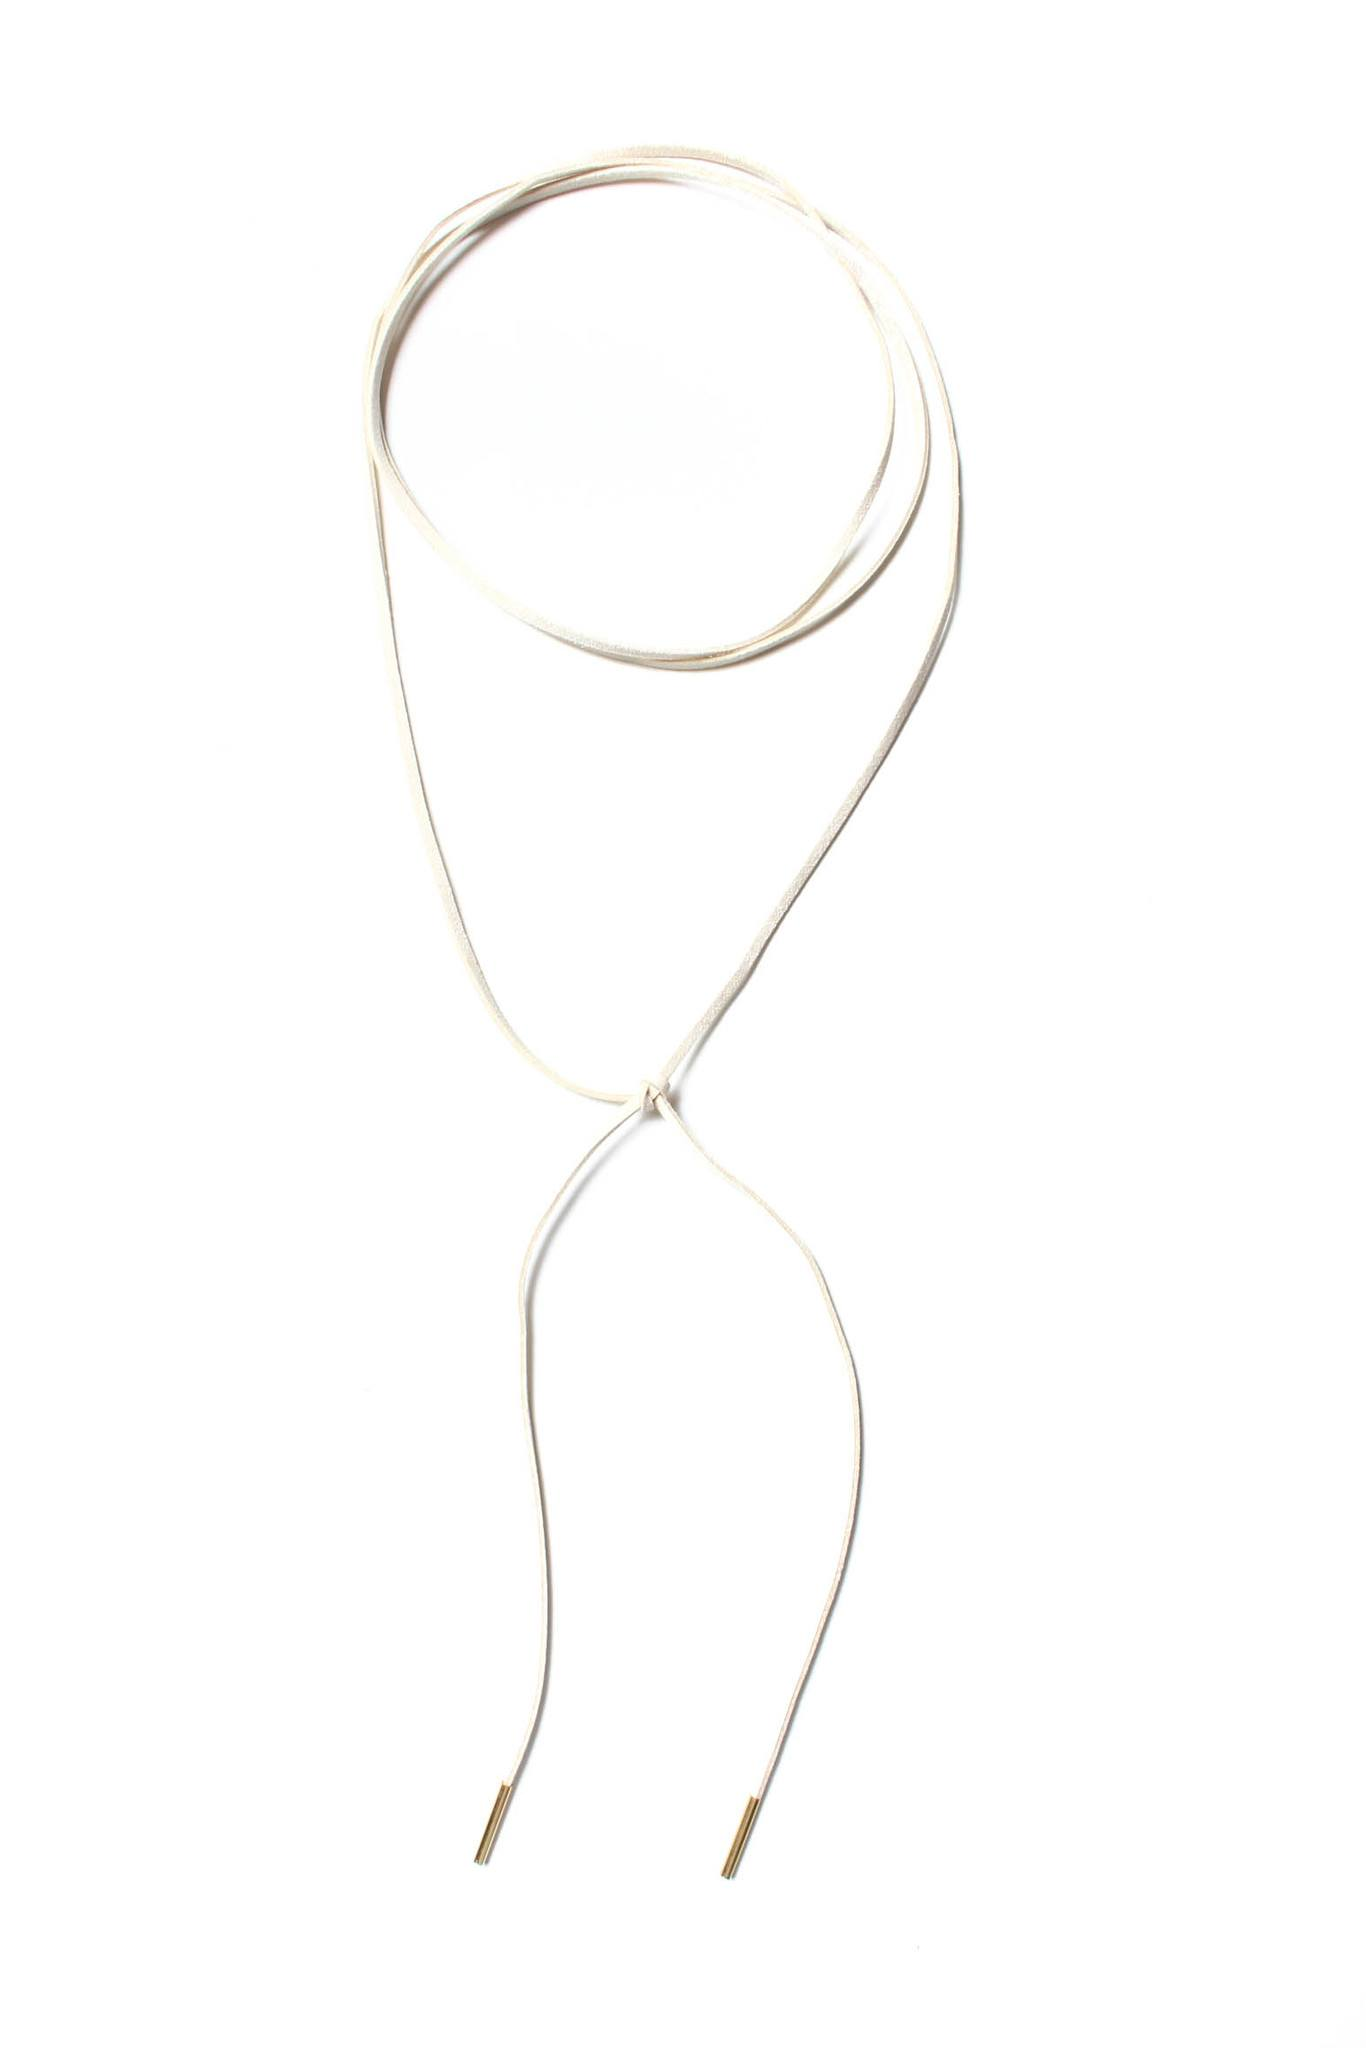 Wrap Up Bolo Necklace - Ivory